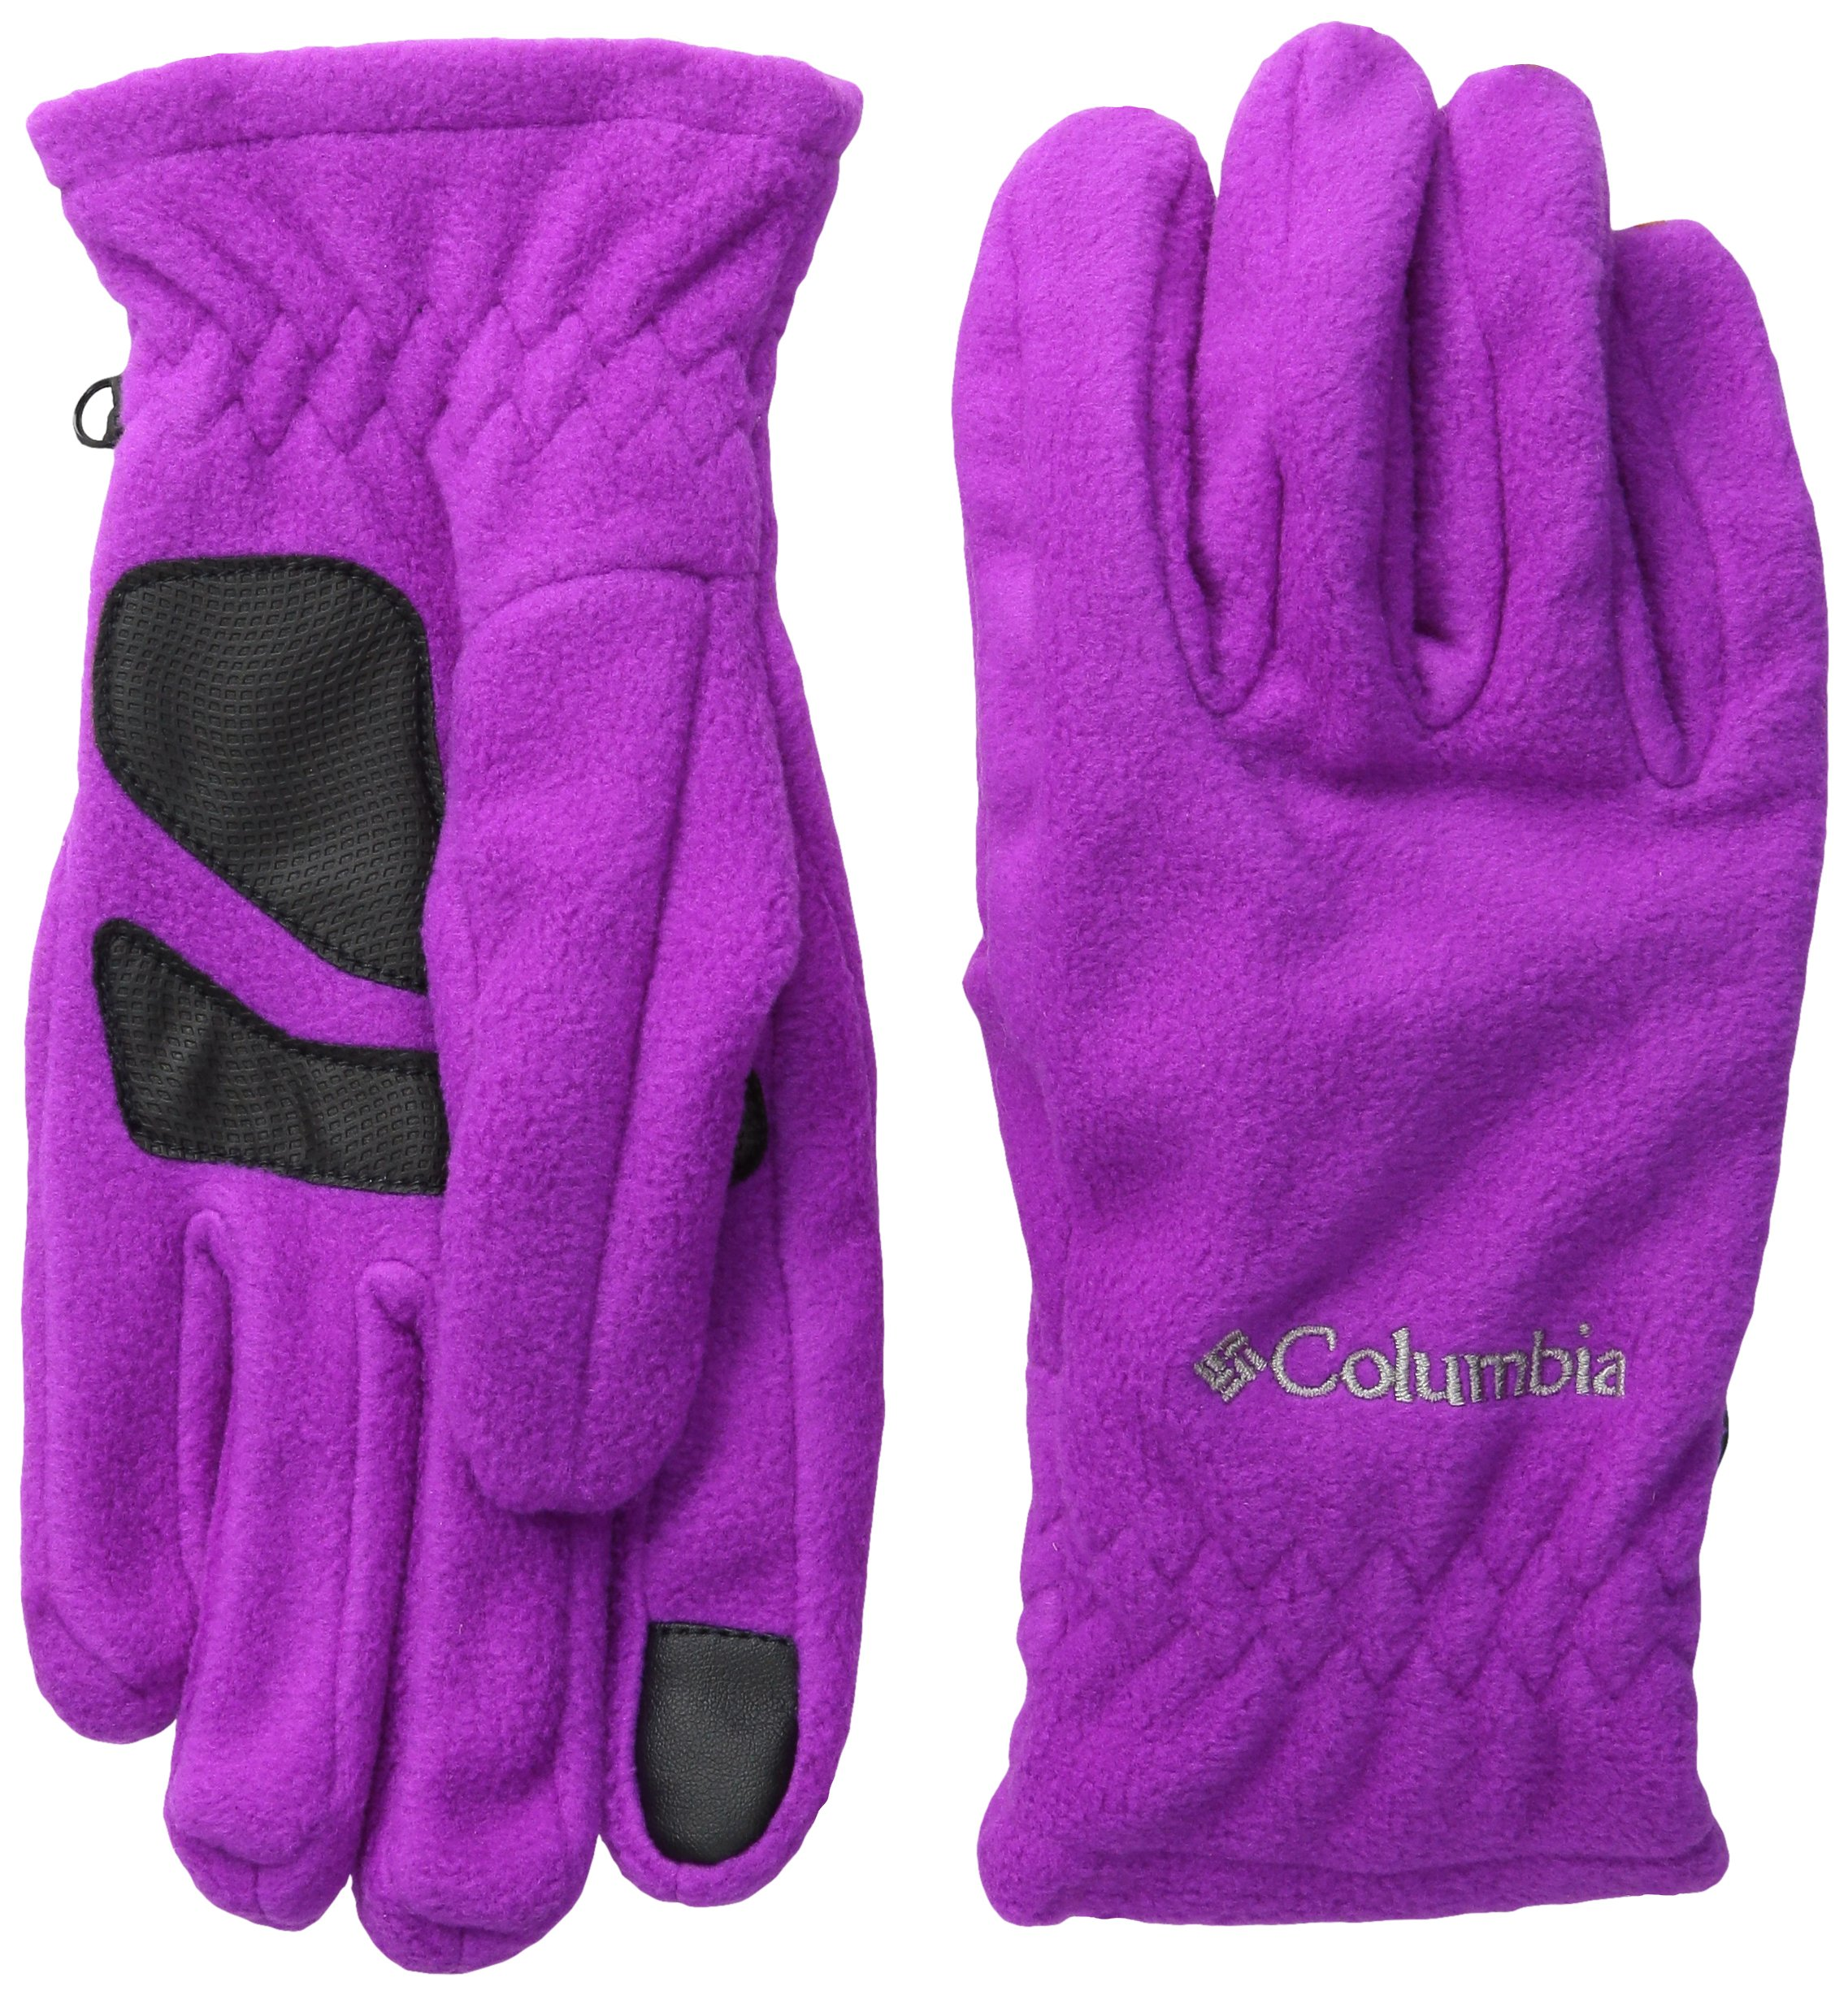 Columbia Women's Thermarator Glove, Bright Plum, Medium by Columbia